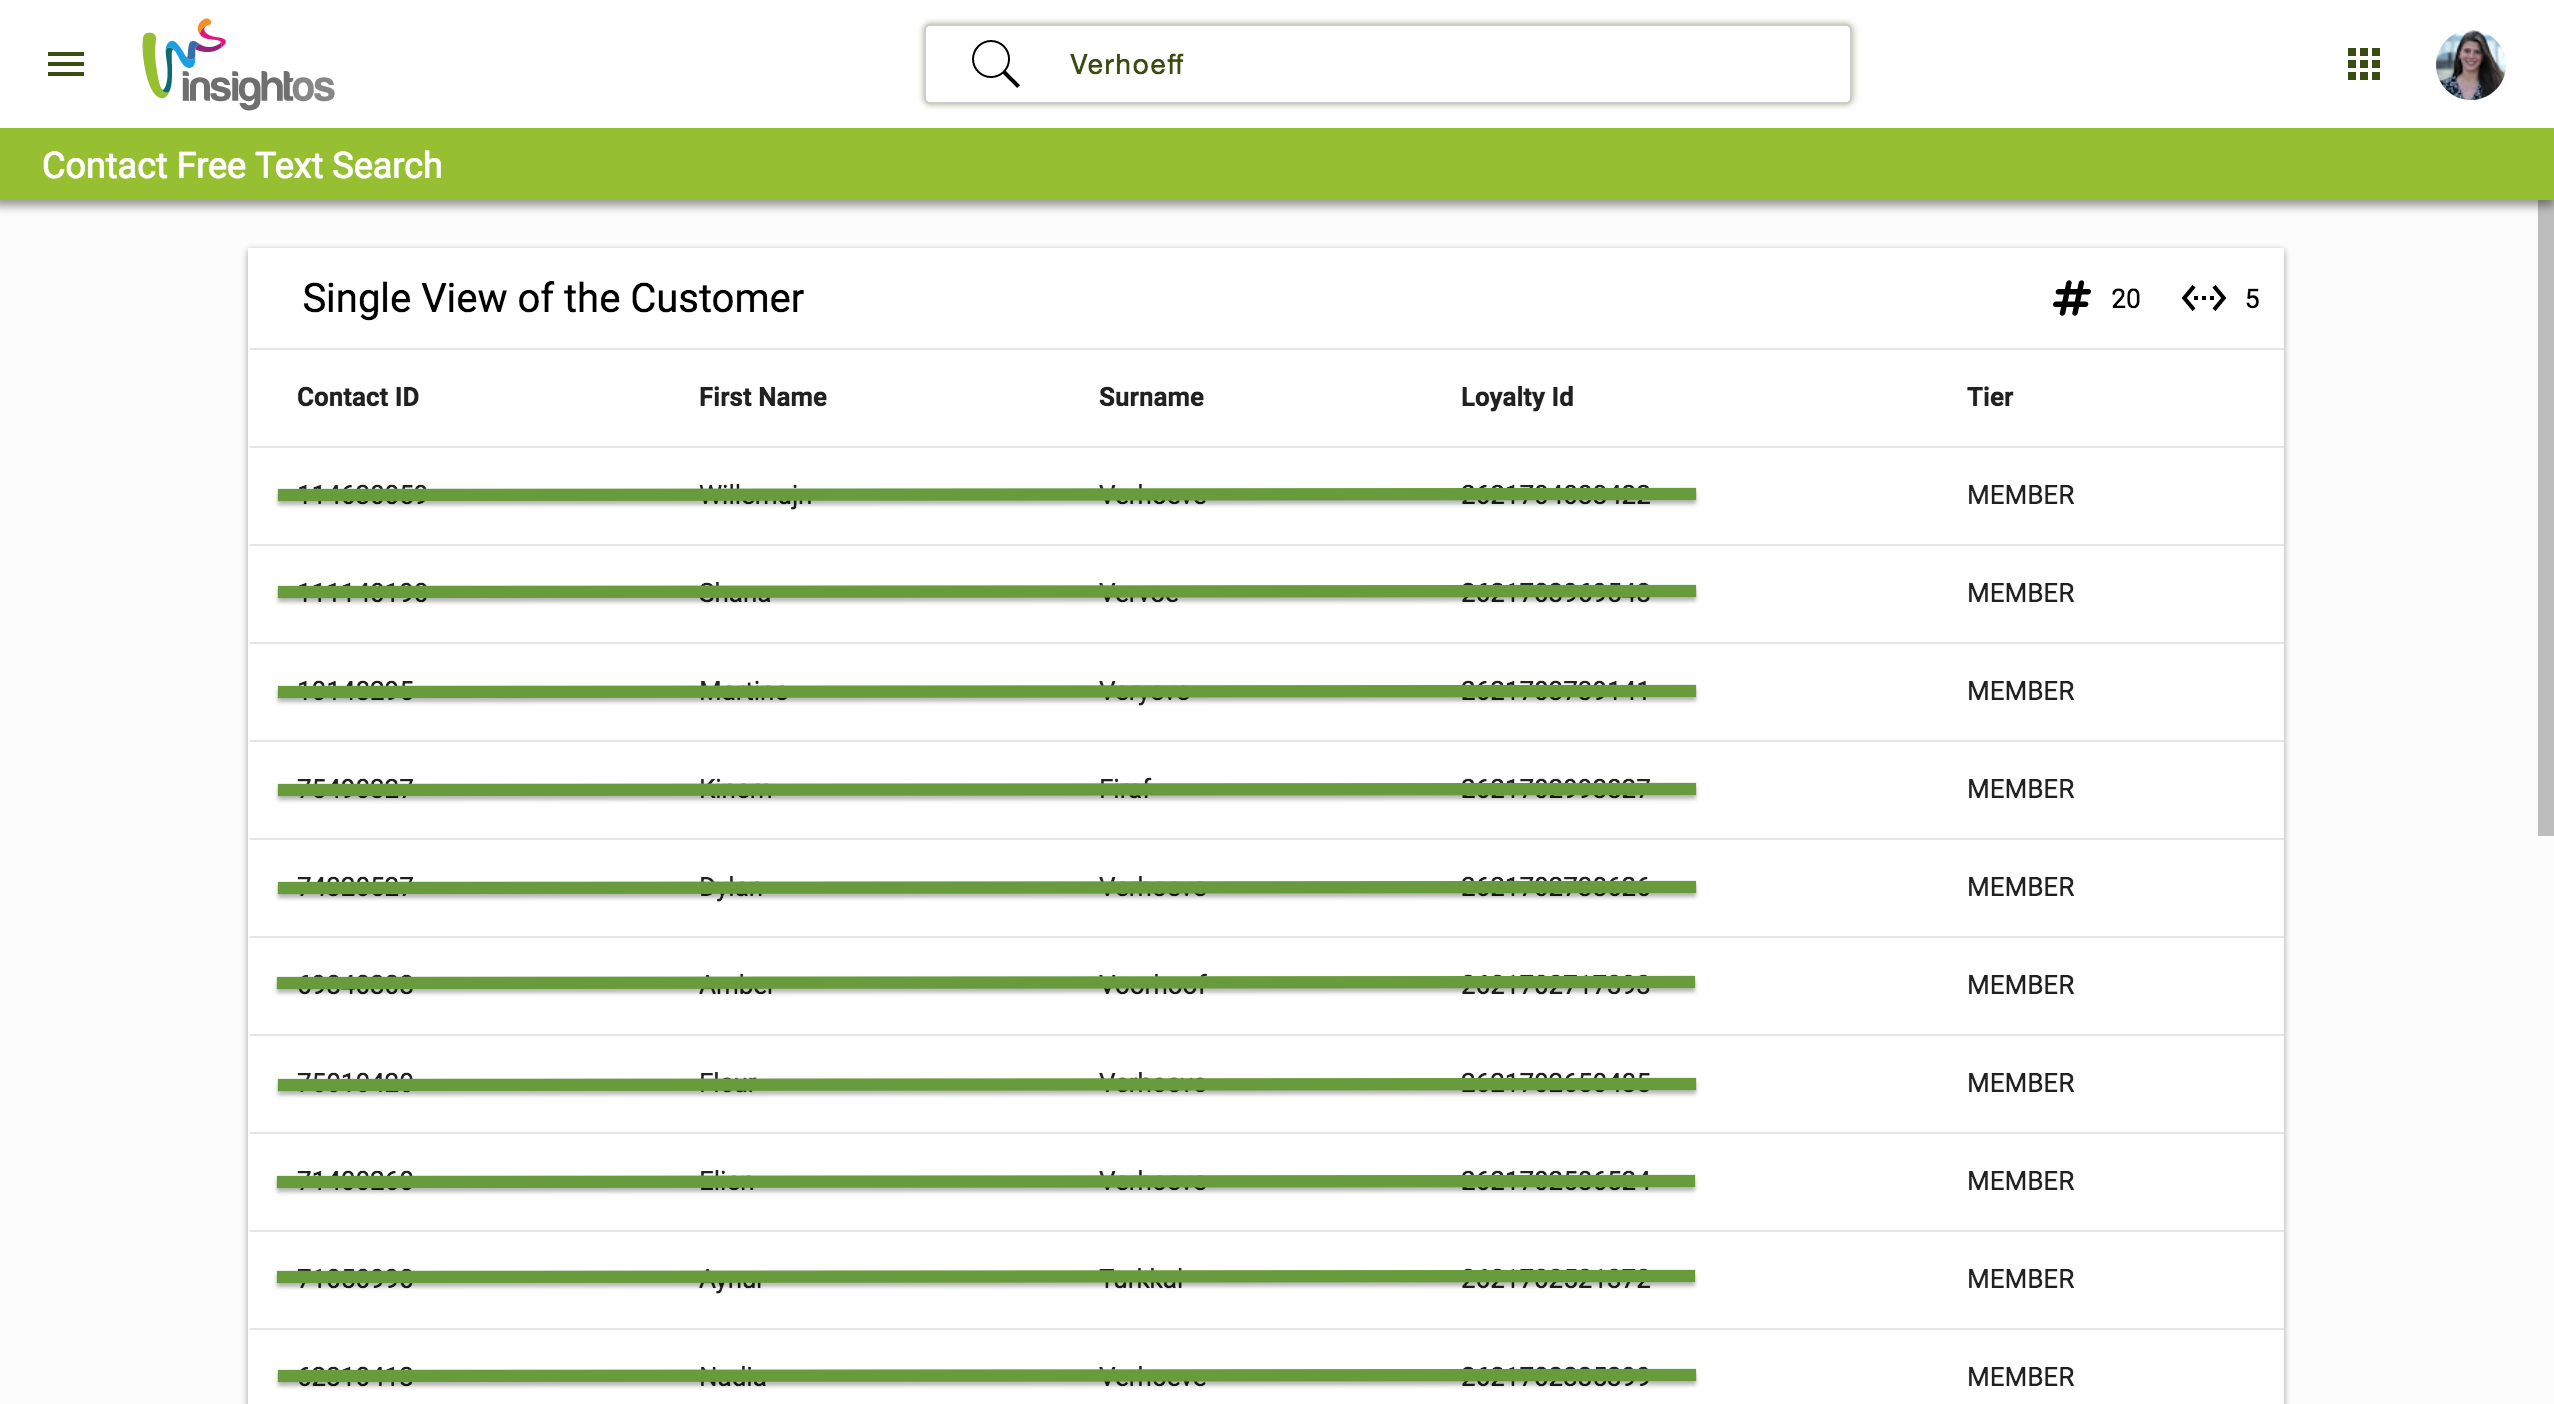 Customer Viewer - Free text Search